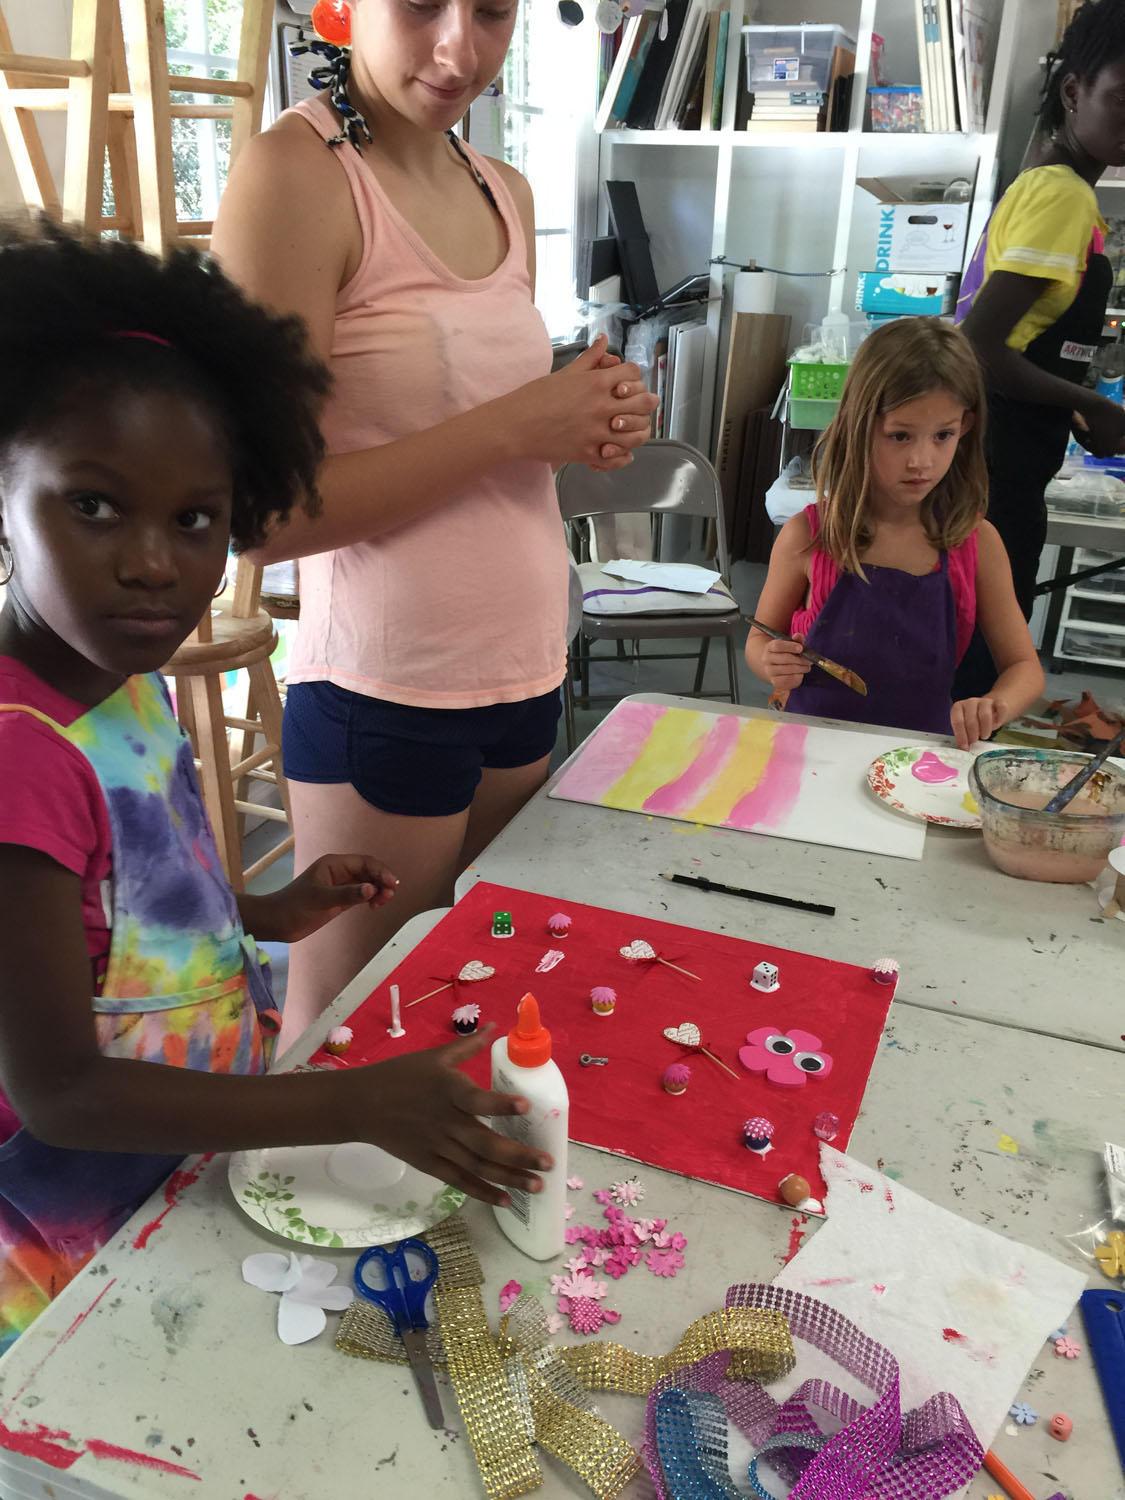 making-art-at-tracey-marshall-studio-greensboro-nc-art-classes-kids-and-adults-IMG_0496.jpg